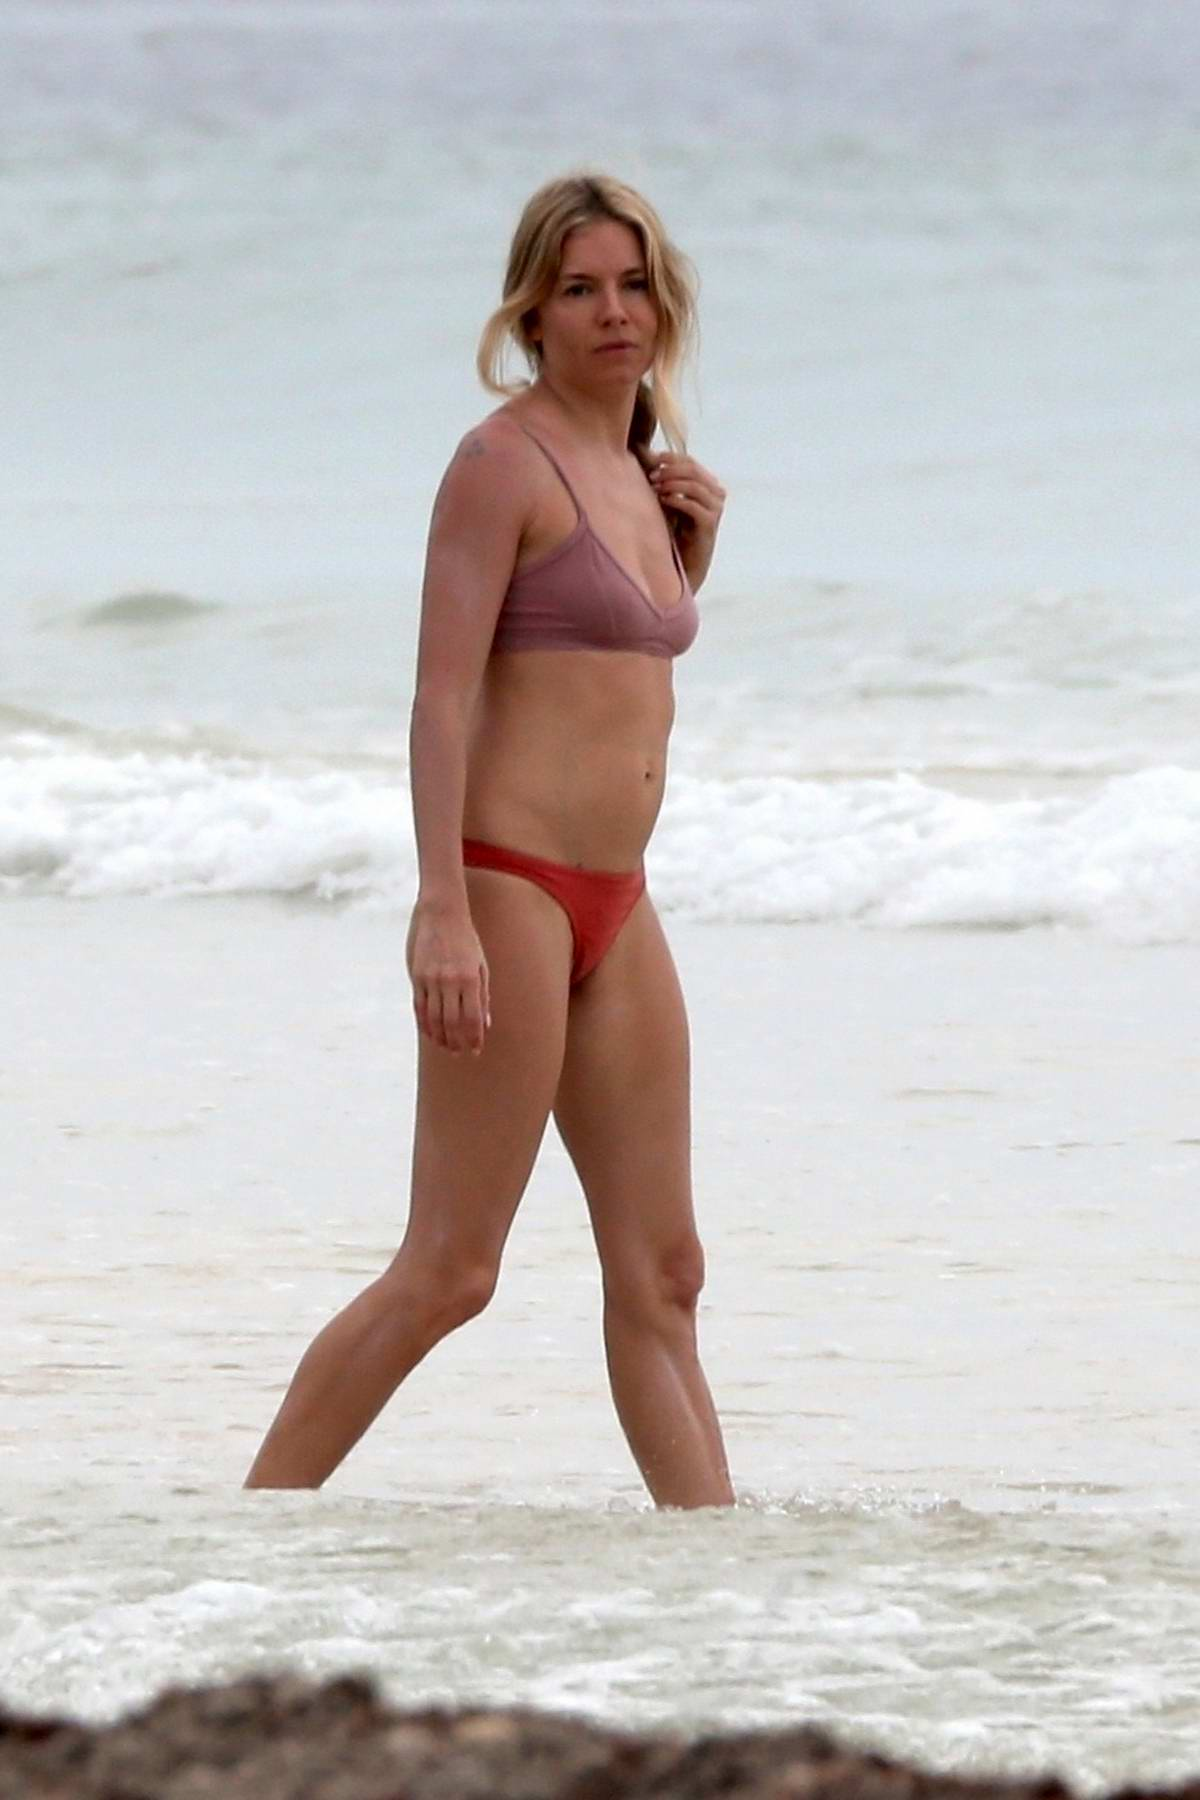 Sienna Miller spotted in a bikini while enjoying the beach with her daughter in Tulum, Mexico